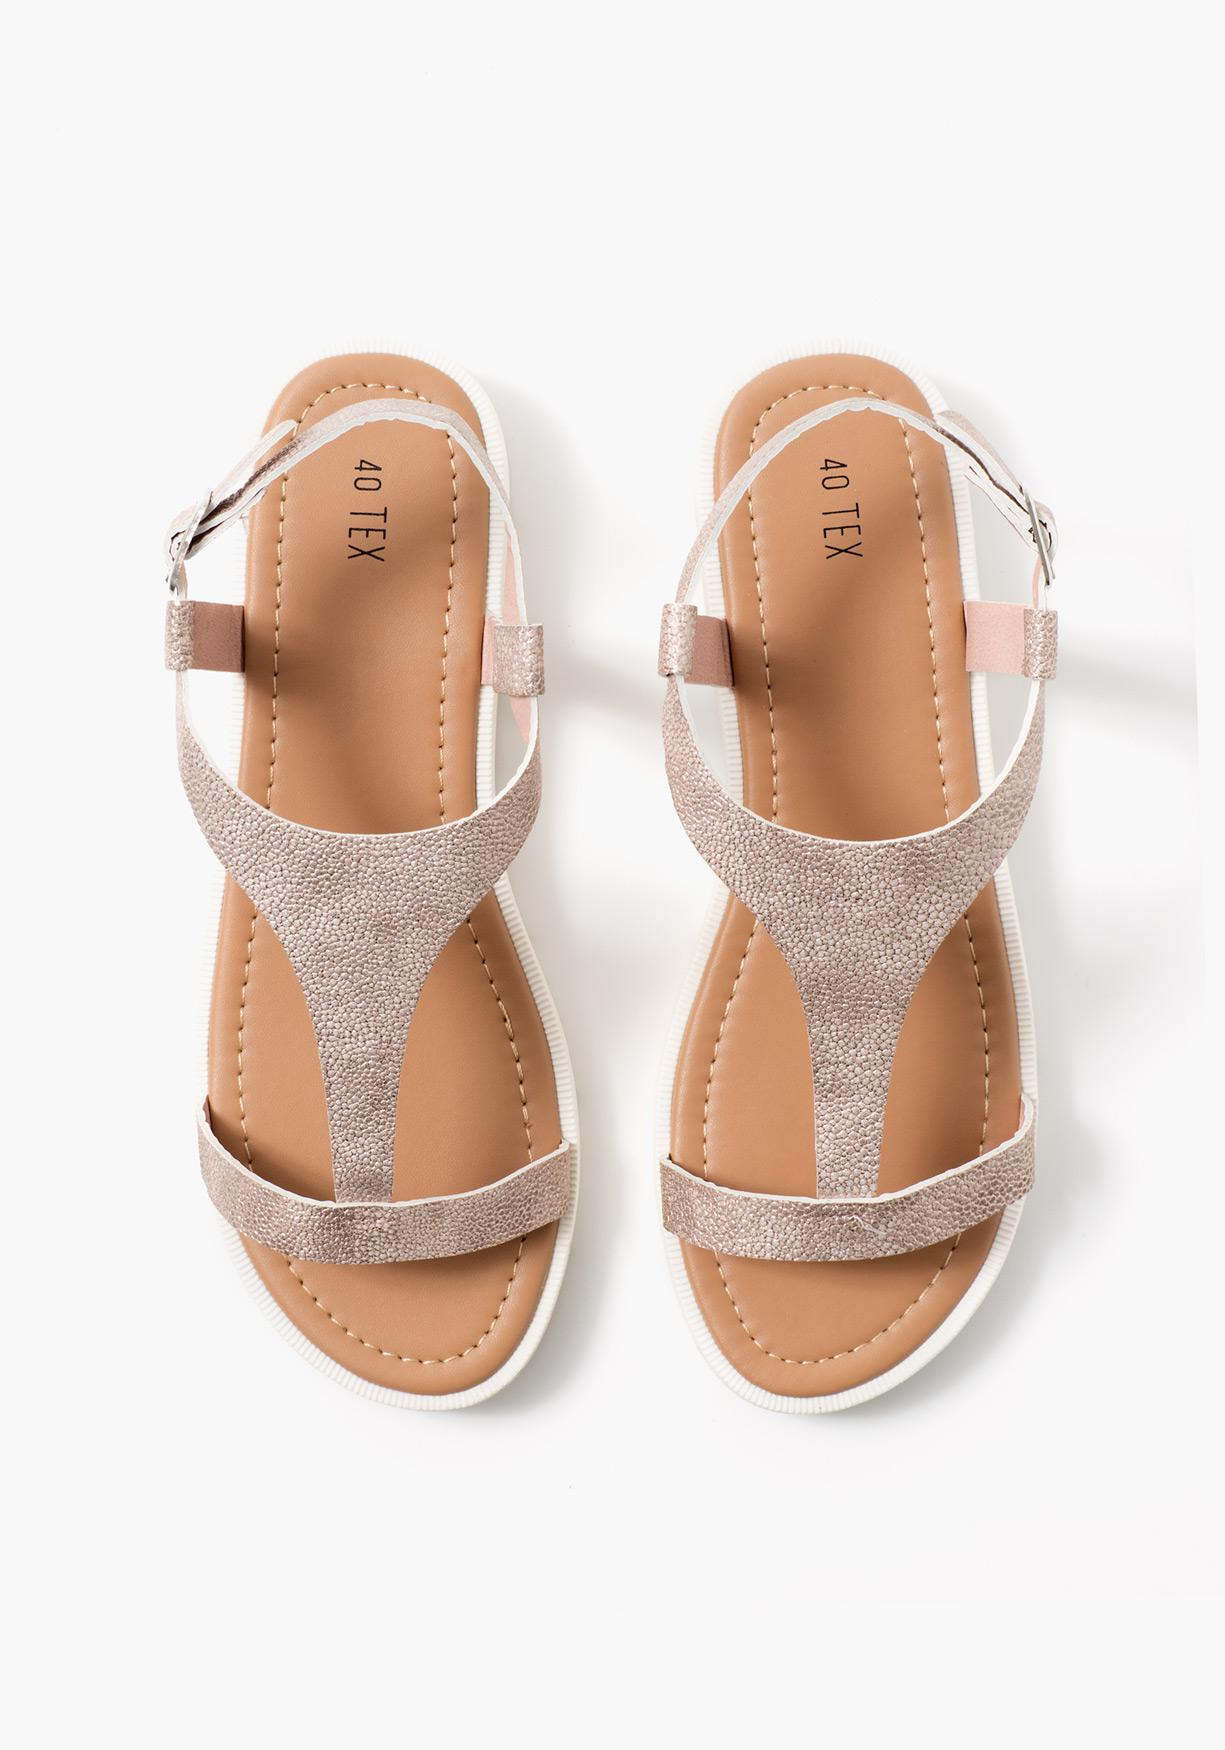 Sandalias brillantes TEX